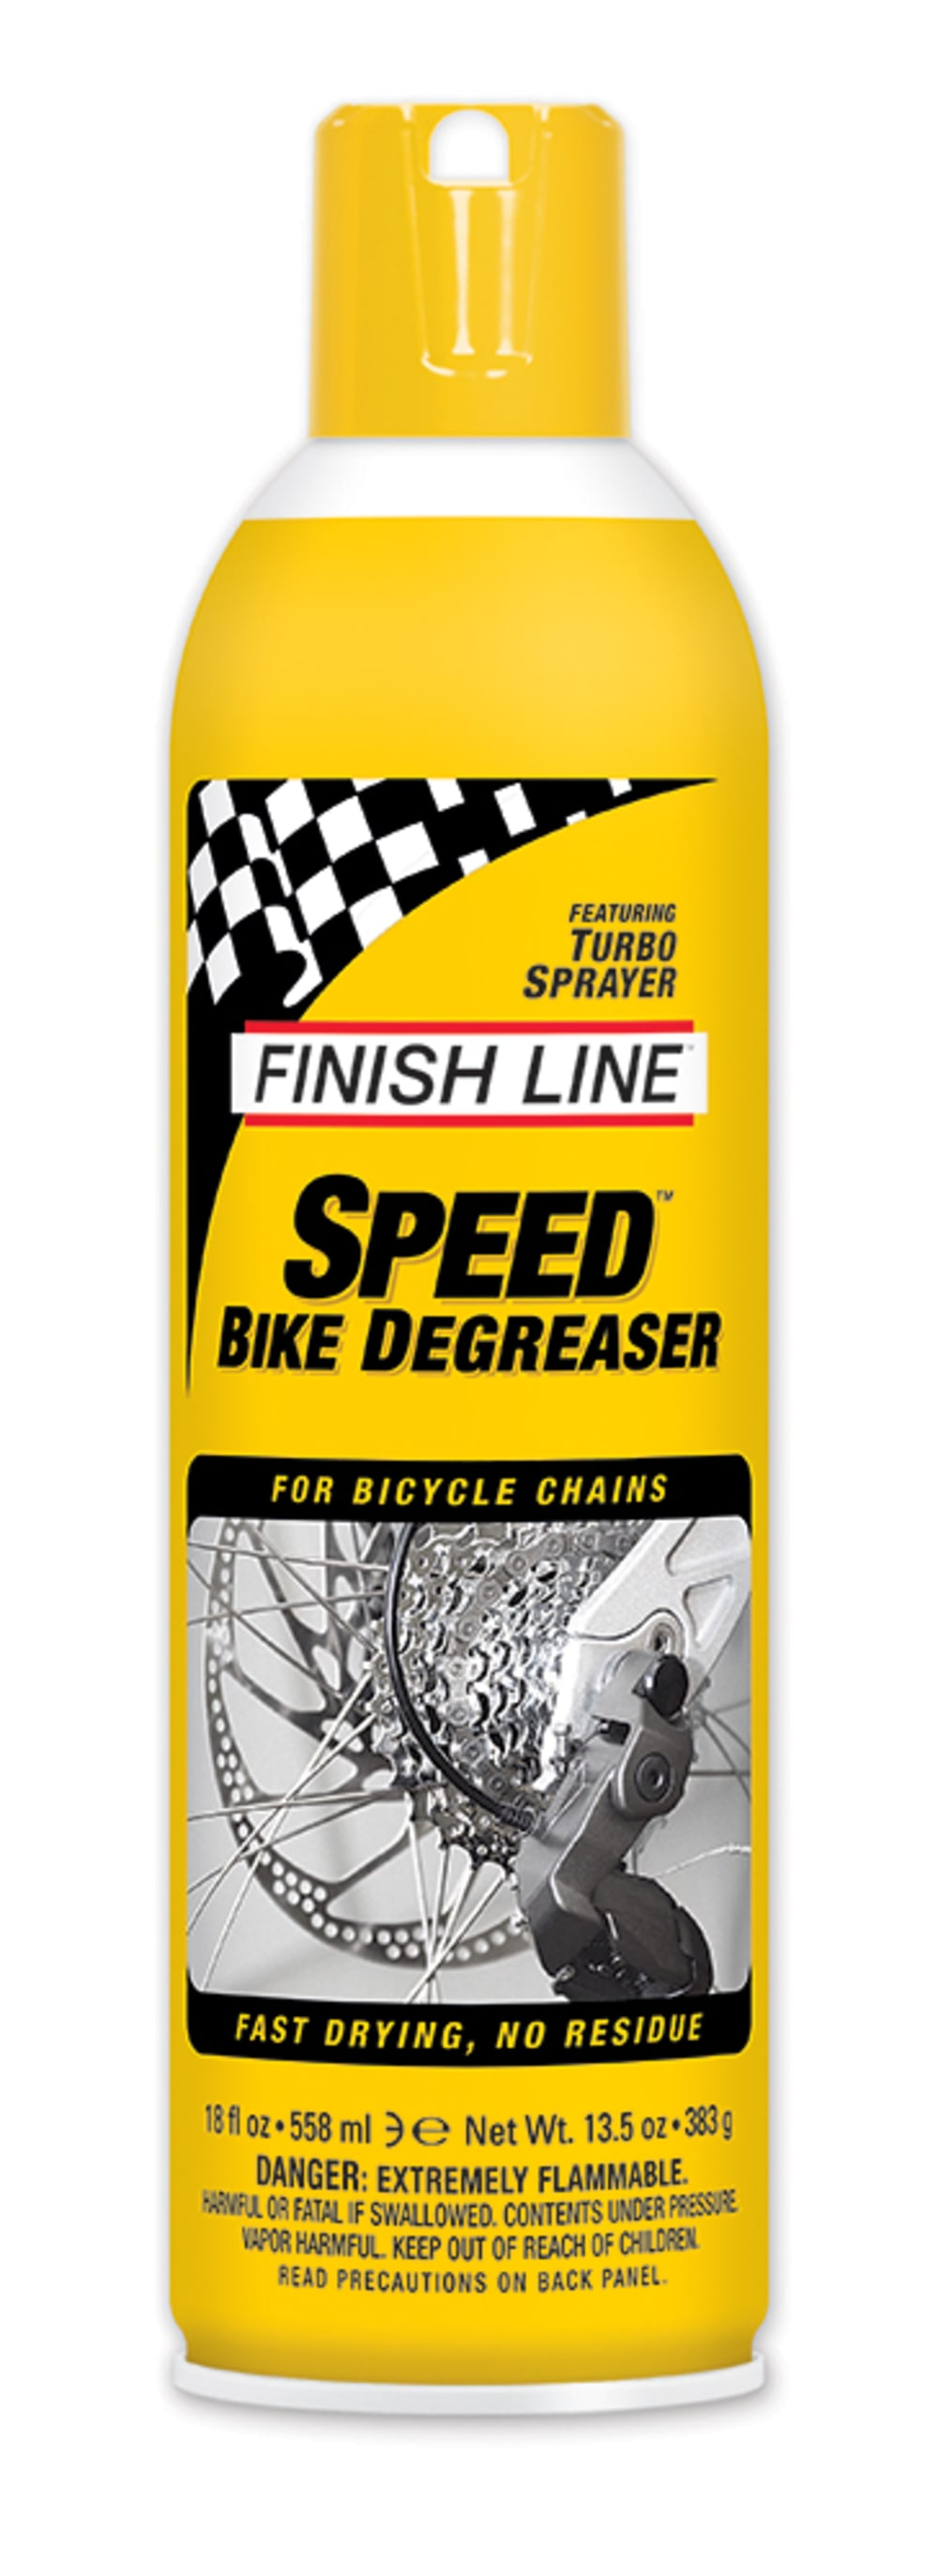 FINISH LINE Speed Bike Degreaser NO SIZE